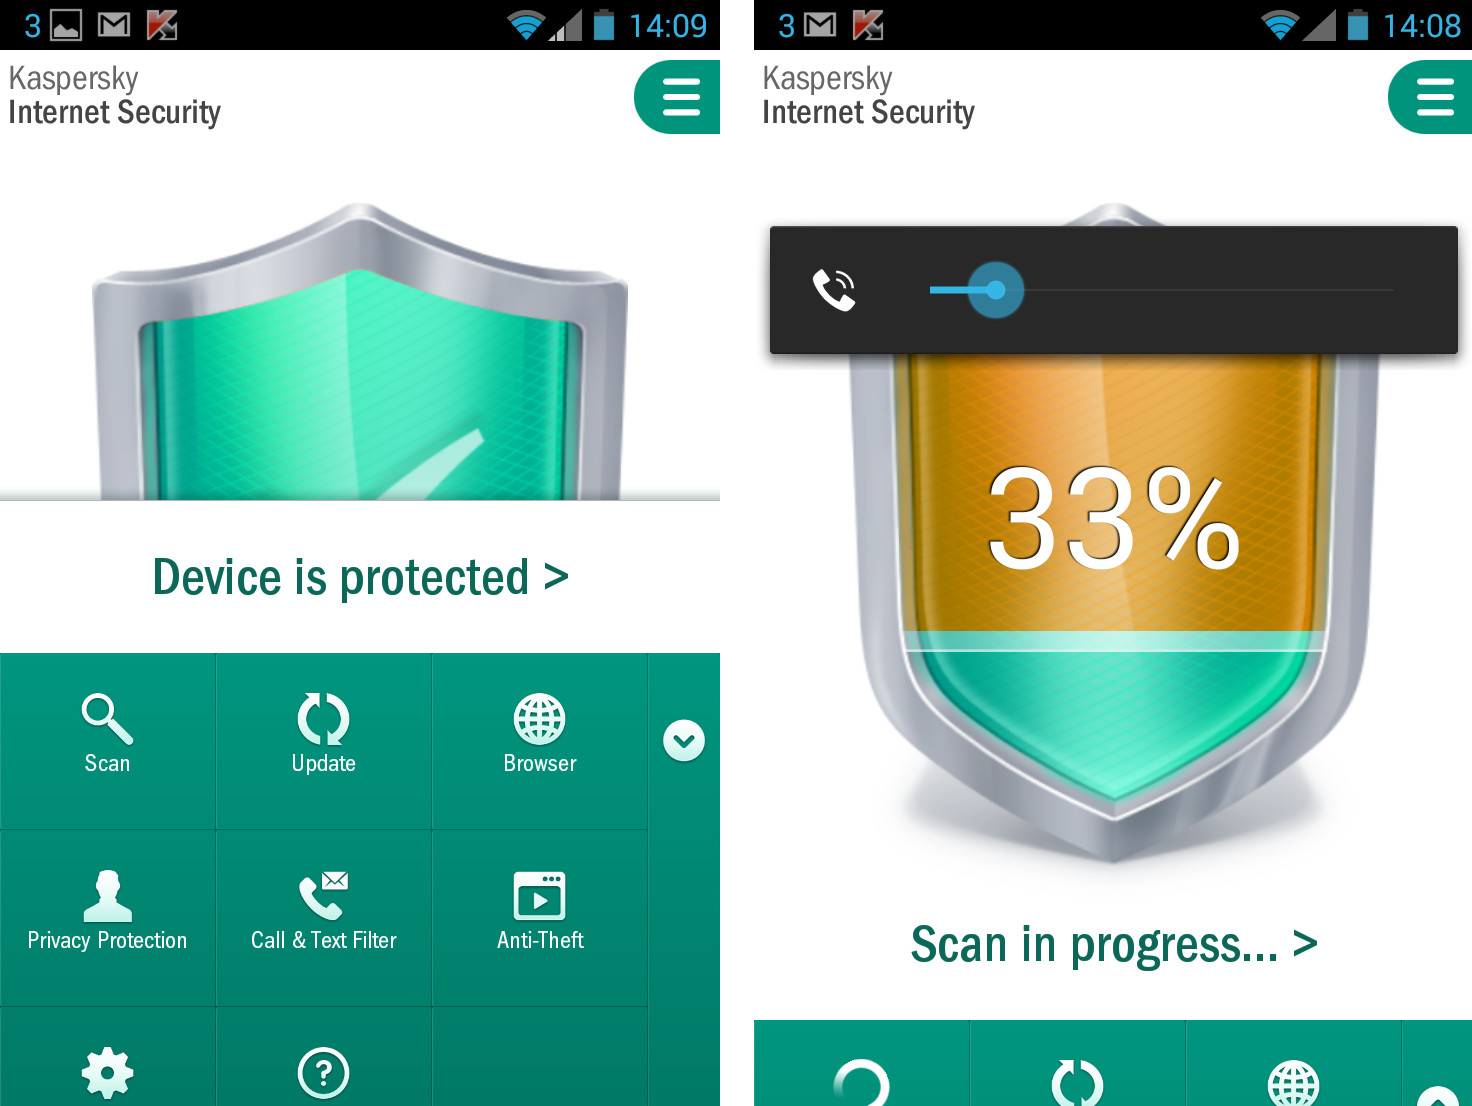 kaspersky internet security android full apk